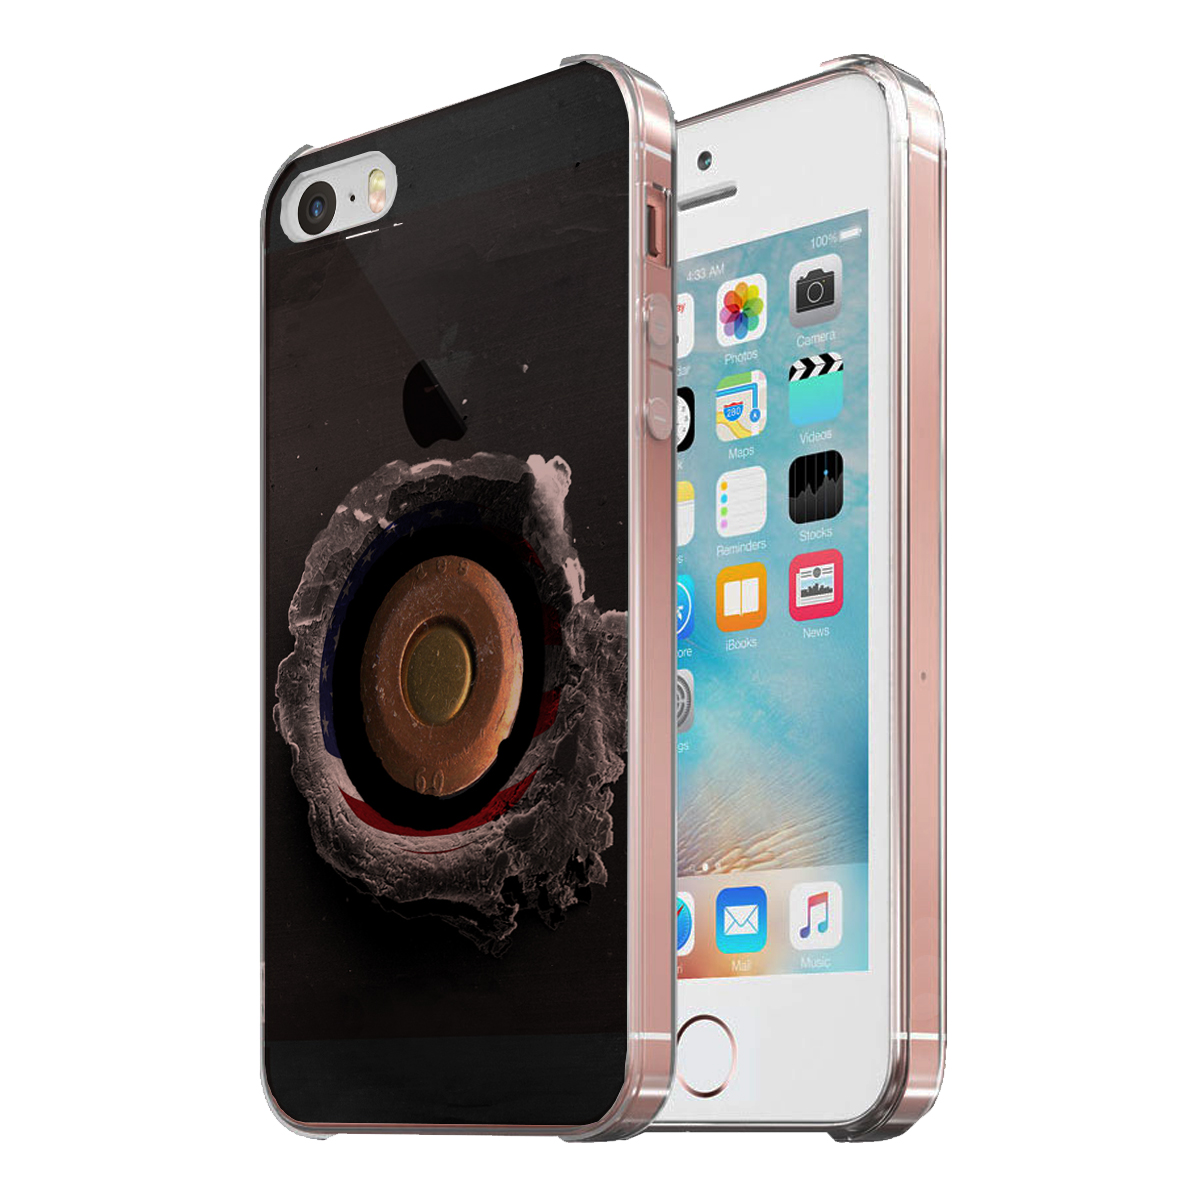 KuzmarK Clear Cover Case fits iPhone SE & iPhone 5 - American Flag Bullet Hole